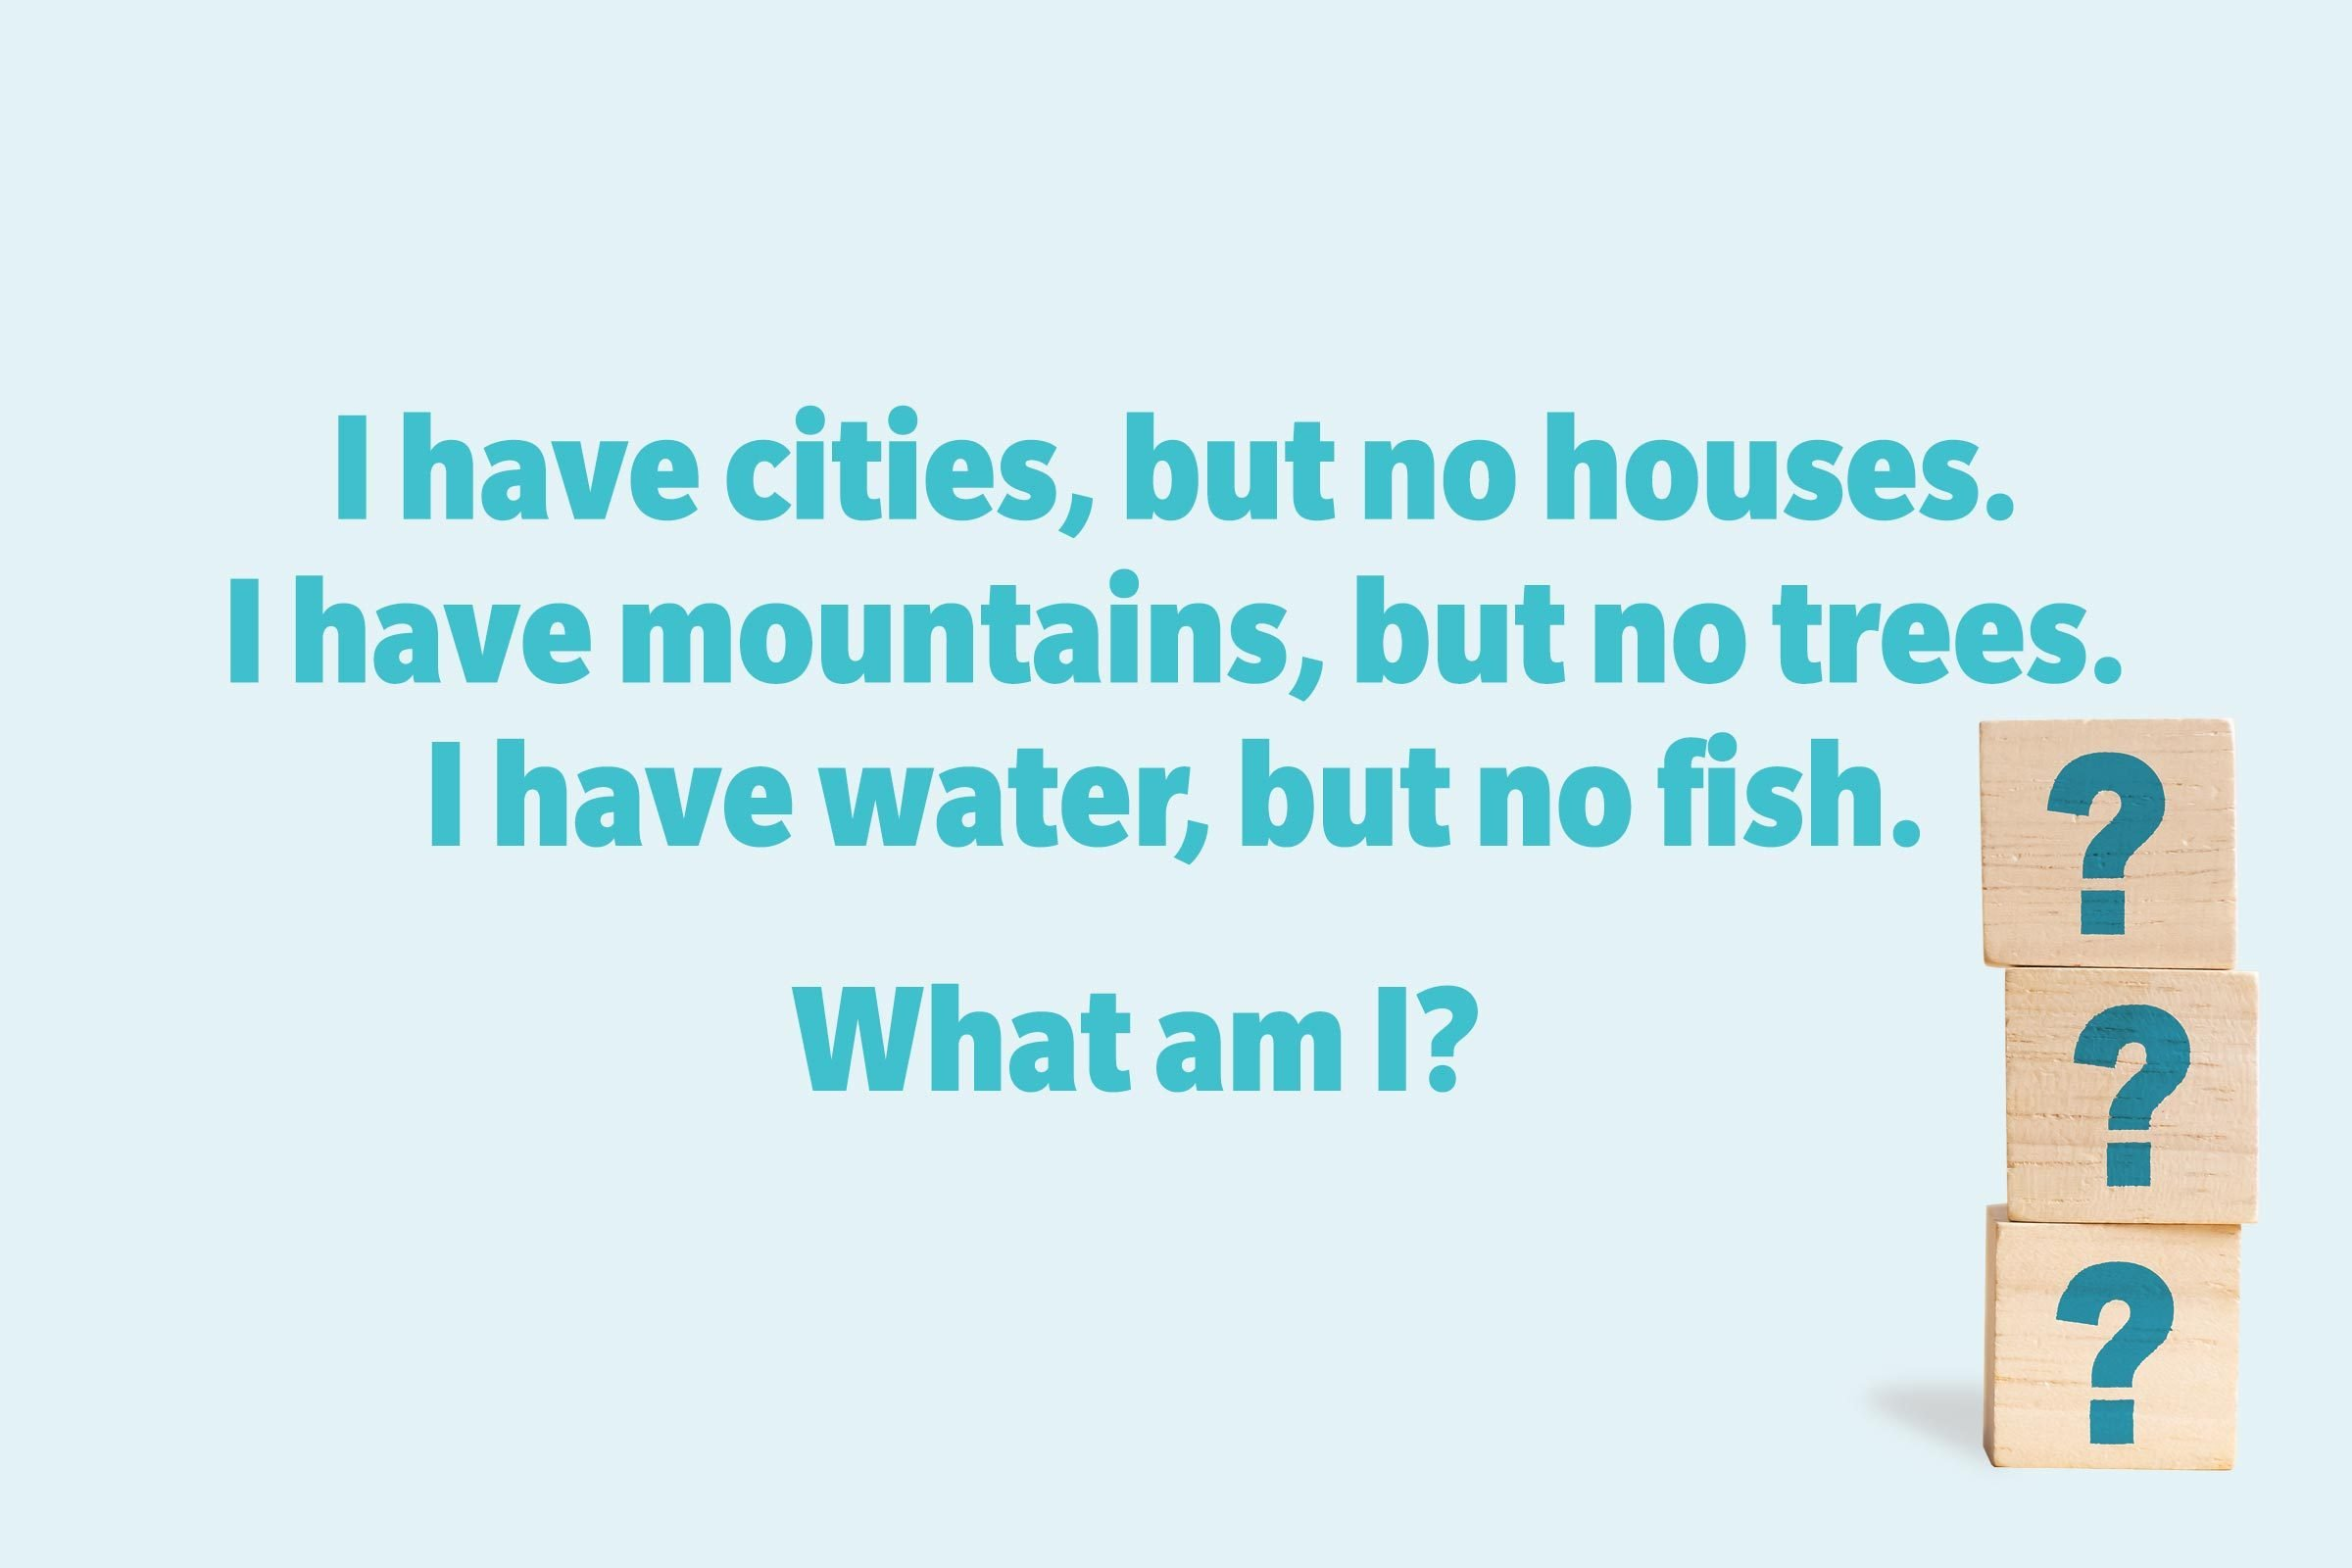 I have cities, but no houses. I have mountains, but no trees. I have water, but no fish. What am I?